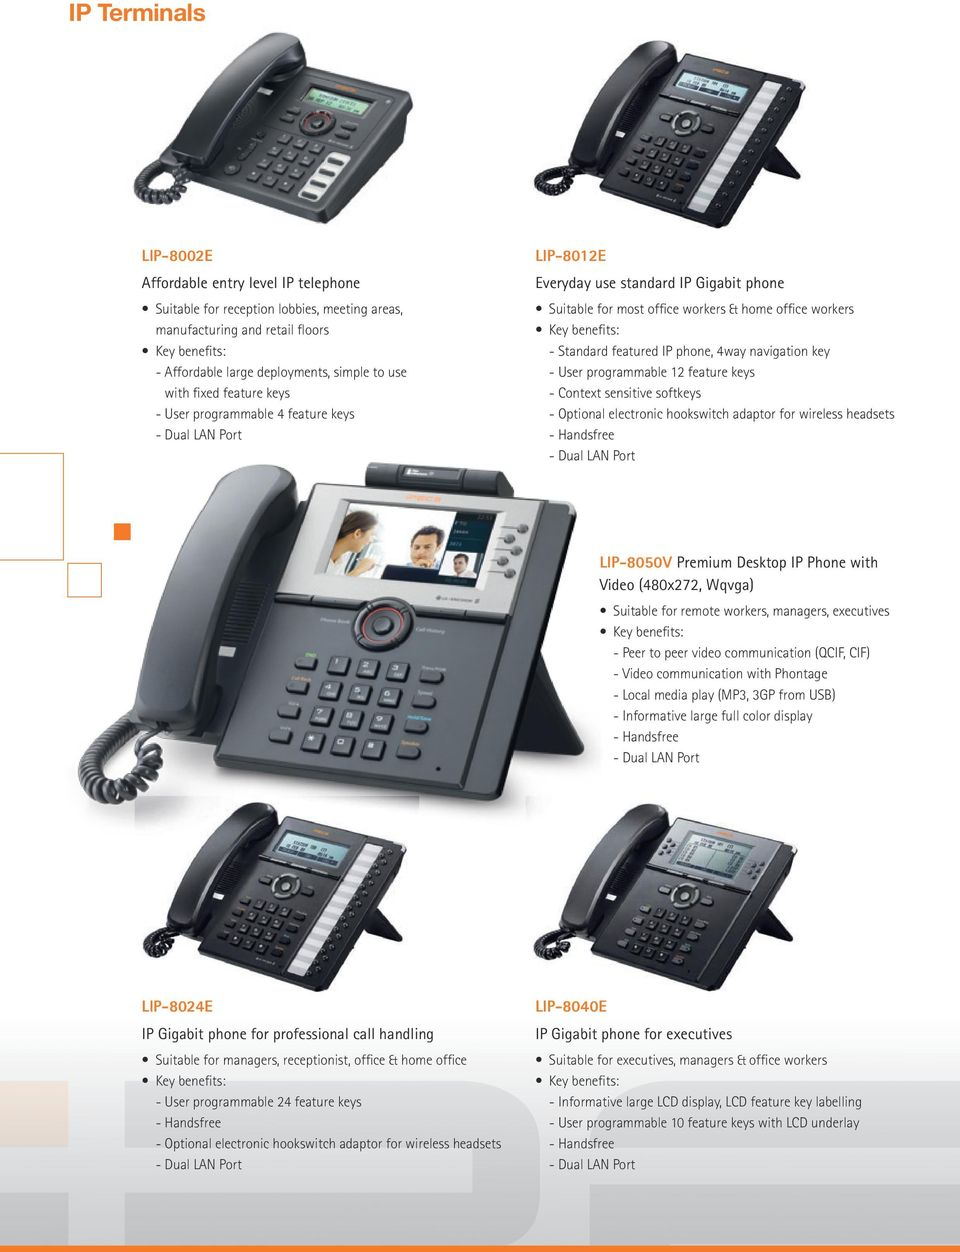 key - User programmable 12 feature keys - Context sensitive softkeys - Optional electronic hookswitch adaptor for wireless headsets - Handsfree LIP-8050V Premium Desktop IP Phone with Video (480x272,